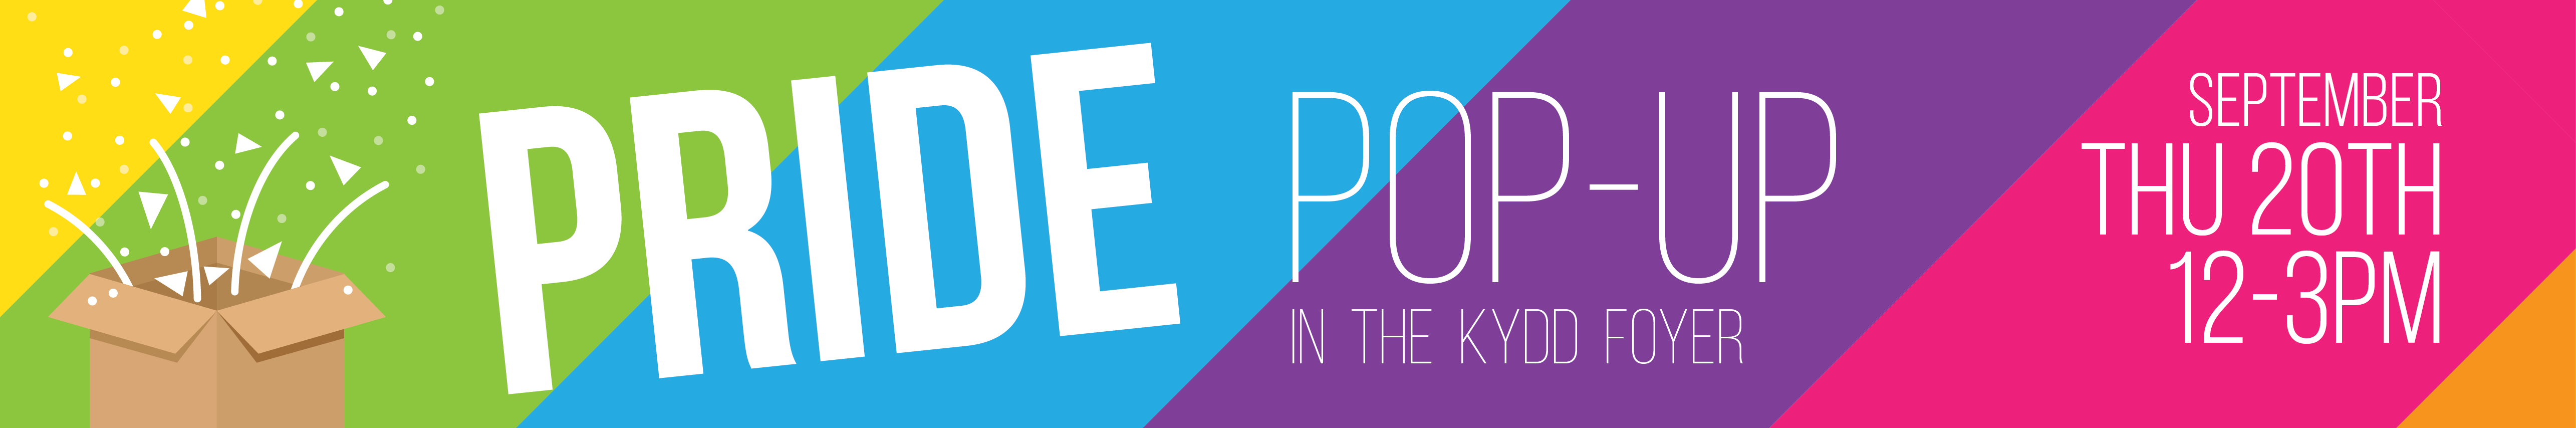 Pride Pop-Up in the Kydd Foyer, September 20th, 12PM to 3PM.